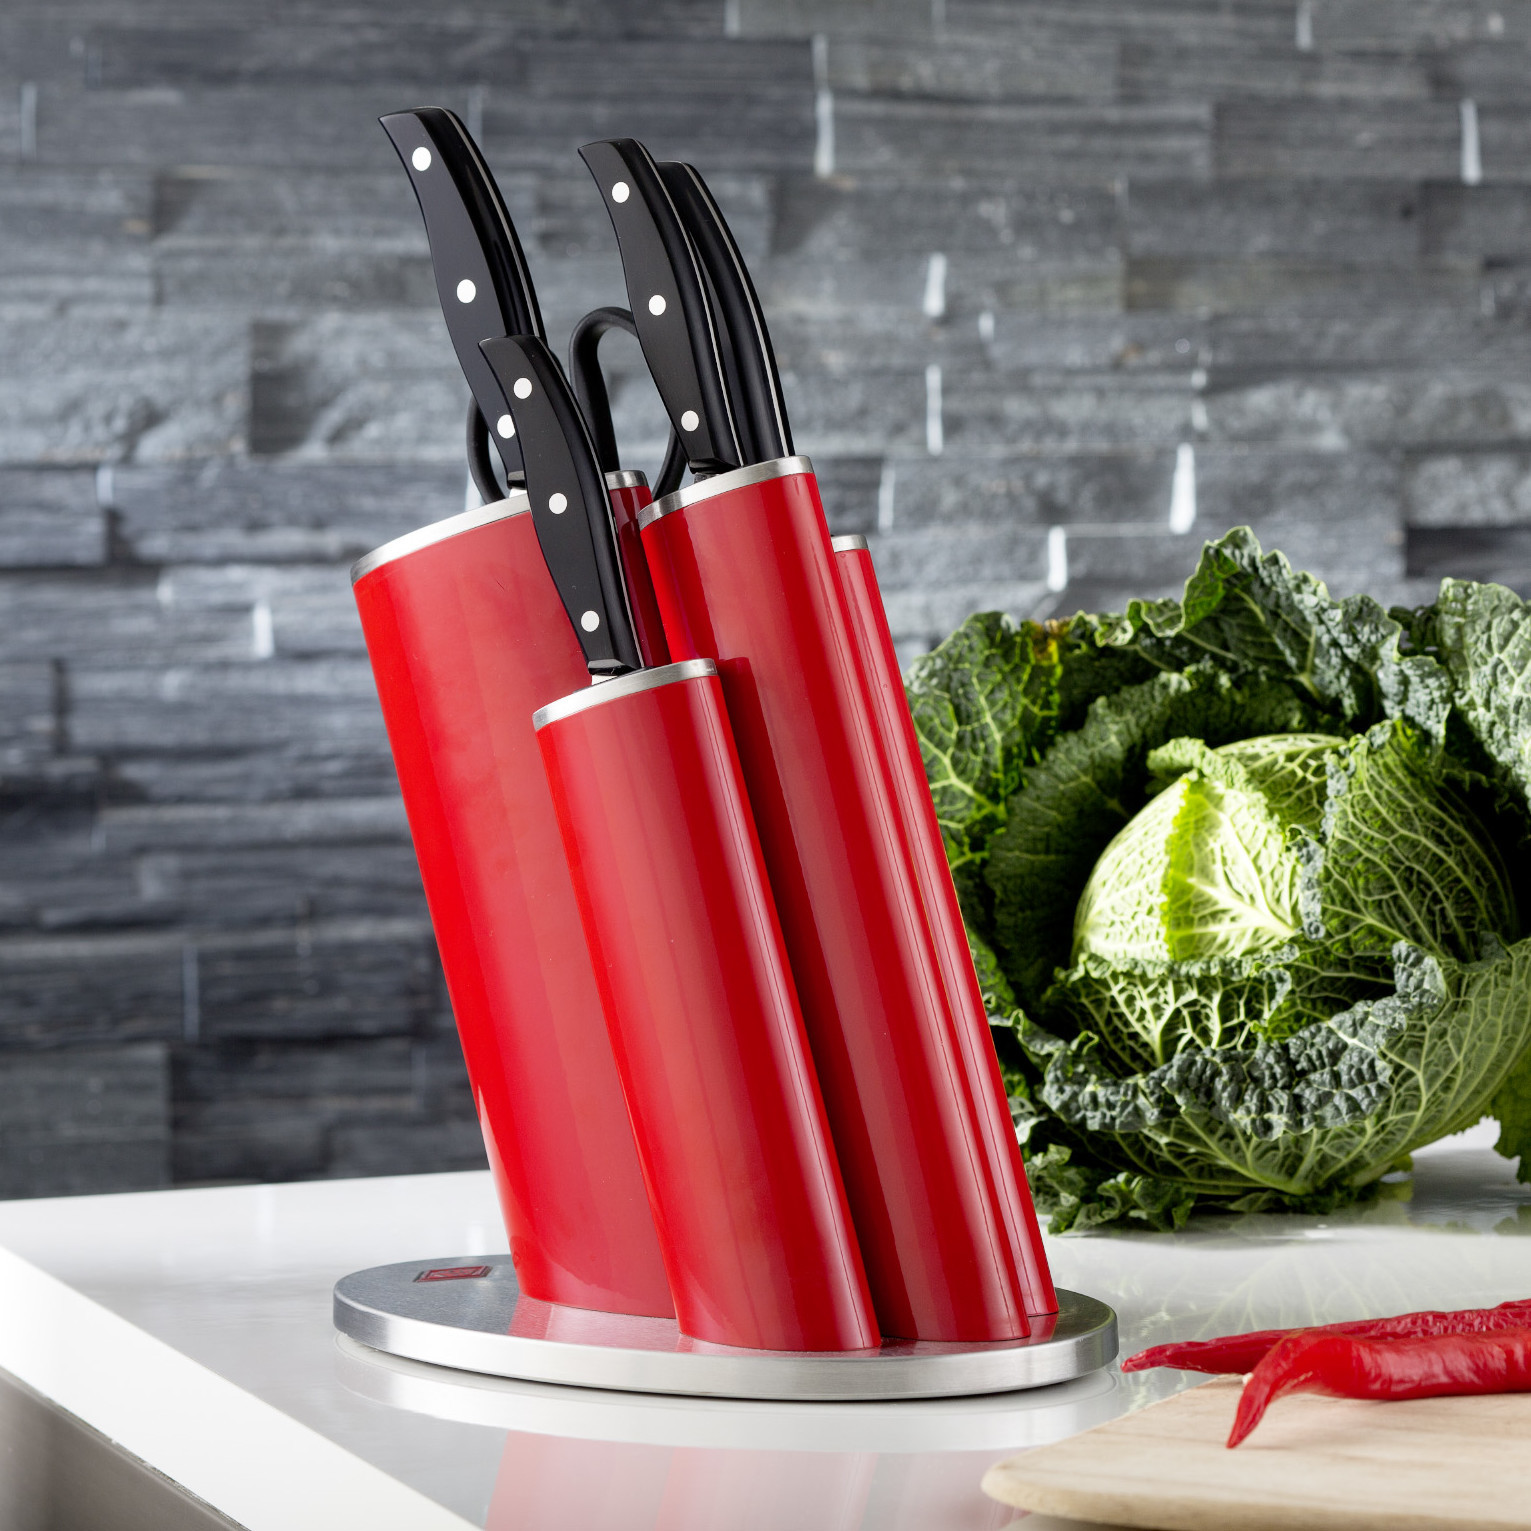 NEW-Asia-Knife-Block-with-Knives